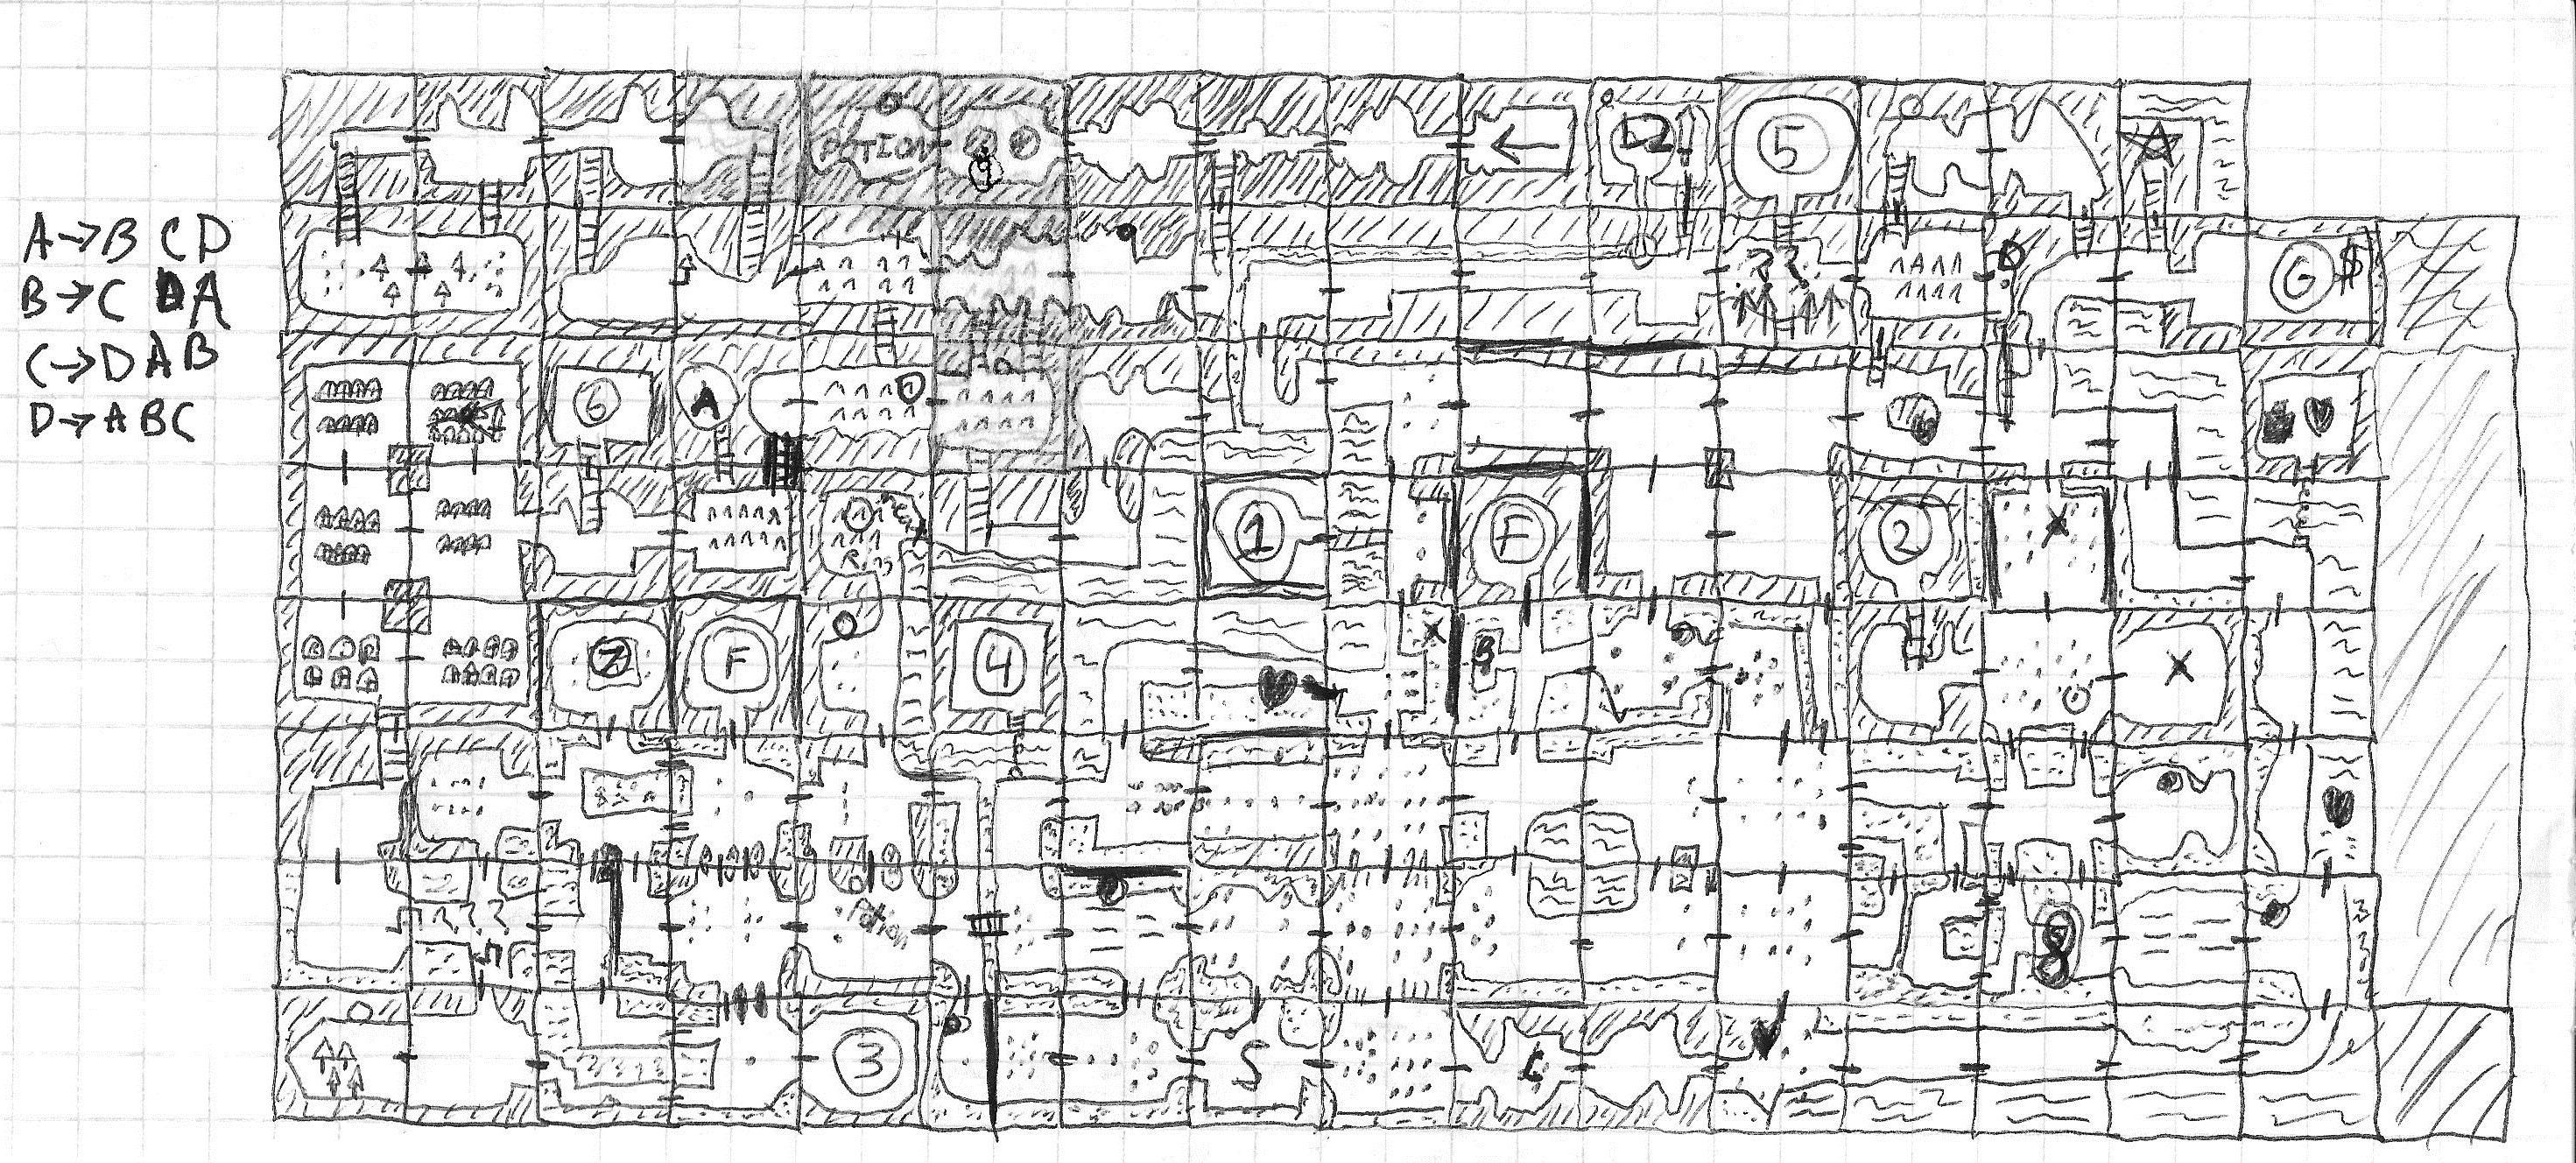 TLOZ Map Draft 2 | Hand drawn map, How to draw hands, Map